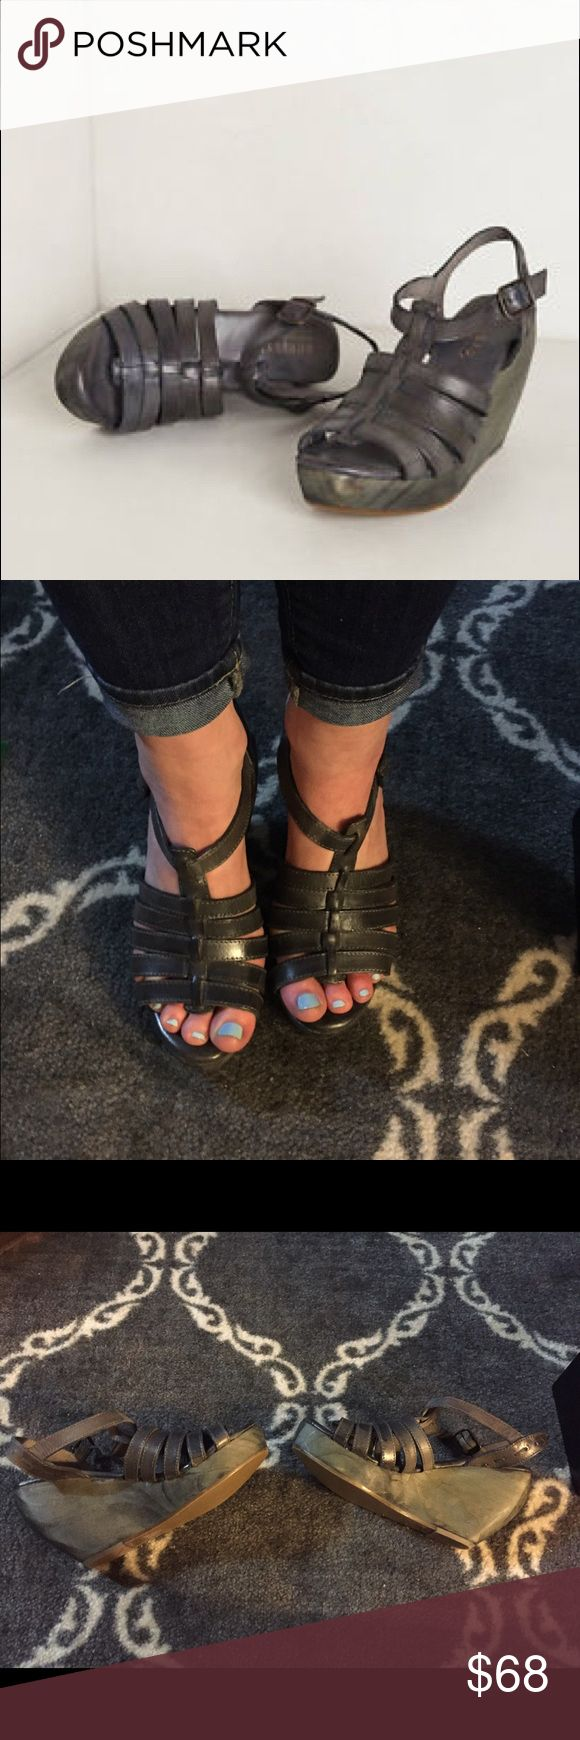 Bed Stü Alana Platform Sandal These never worn platforms are perfect for spring/summer nights. Can be dressed up or down. Bed Stu Shoes Platforms